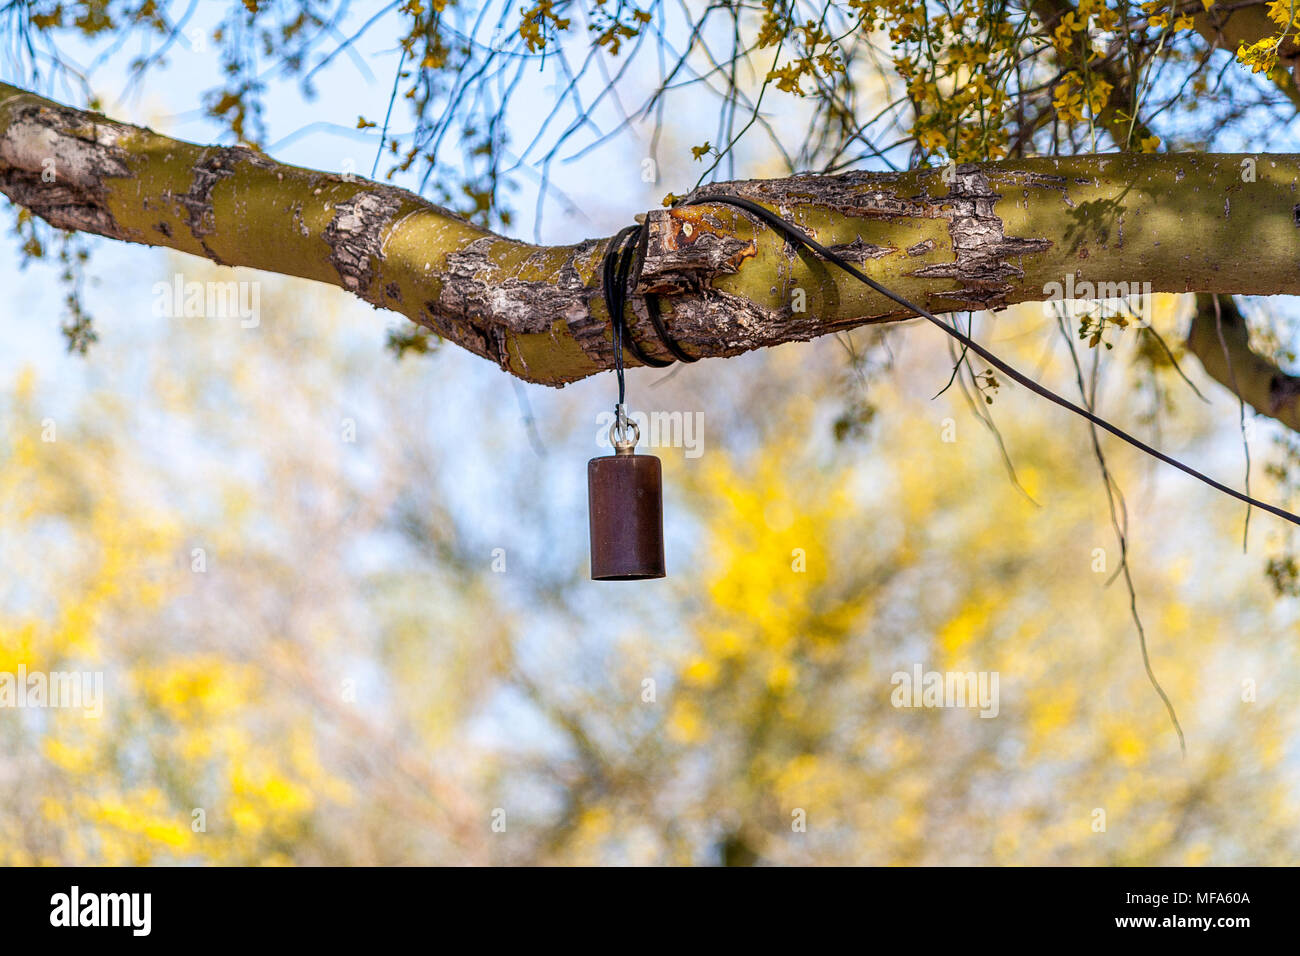 hanging string lights in branches in the desert - Stock Image